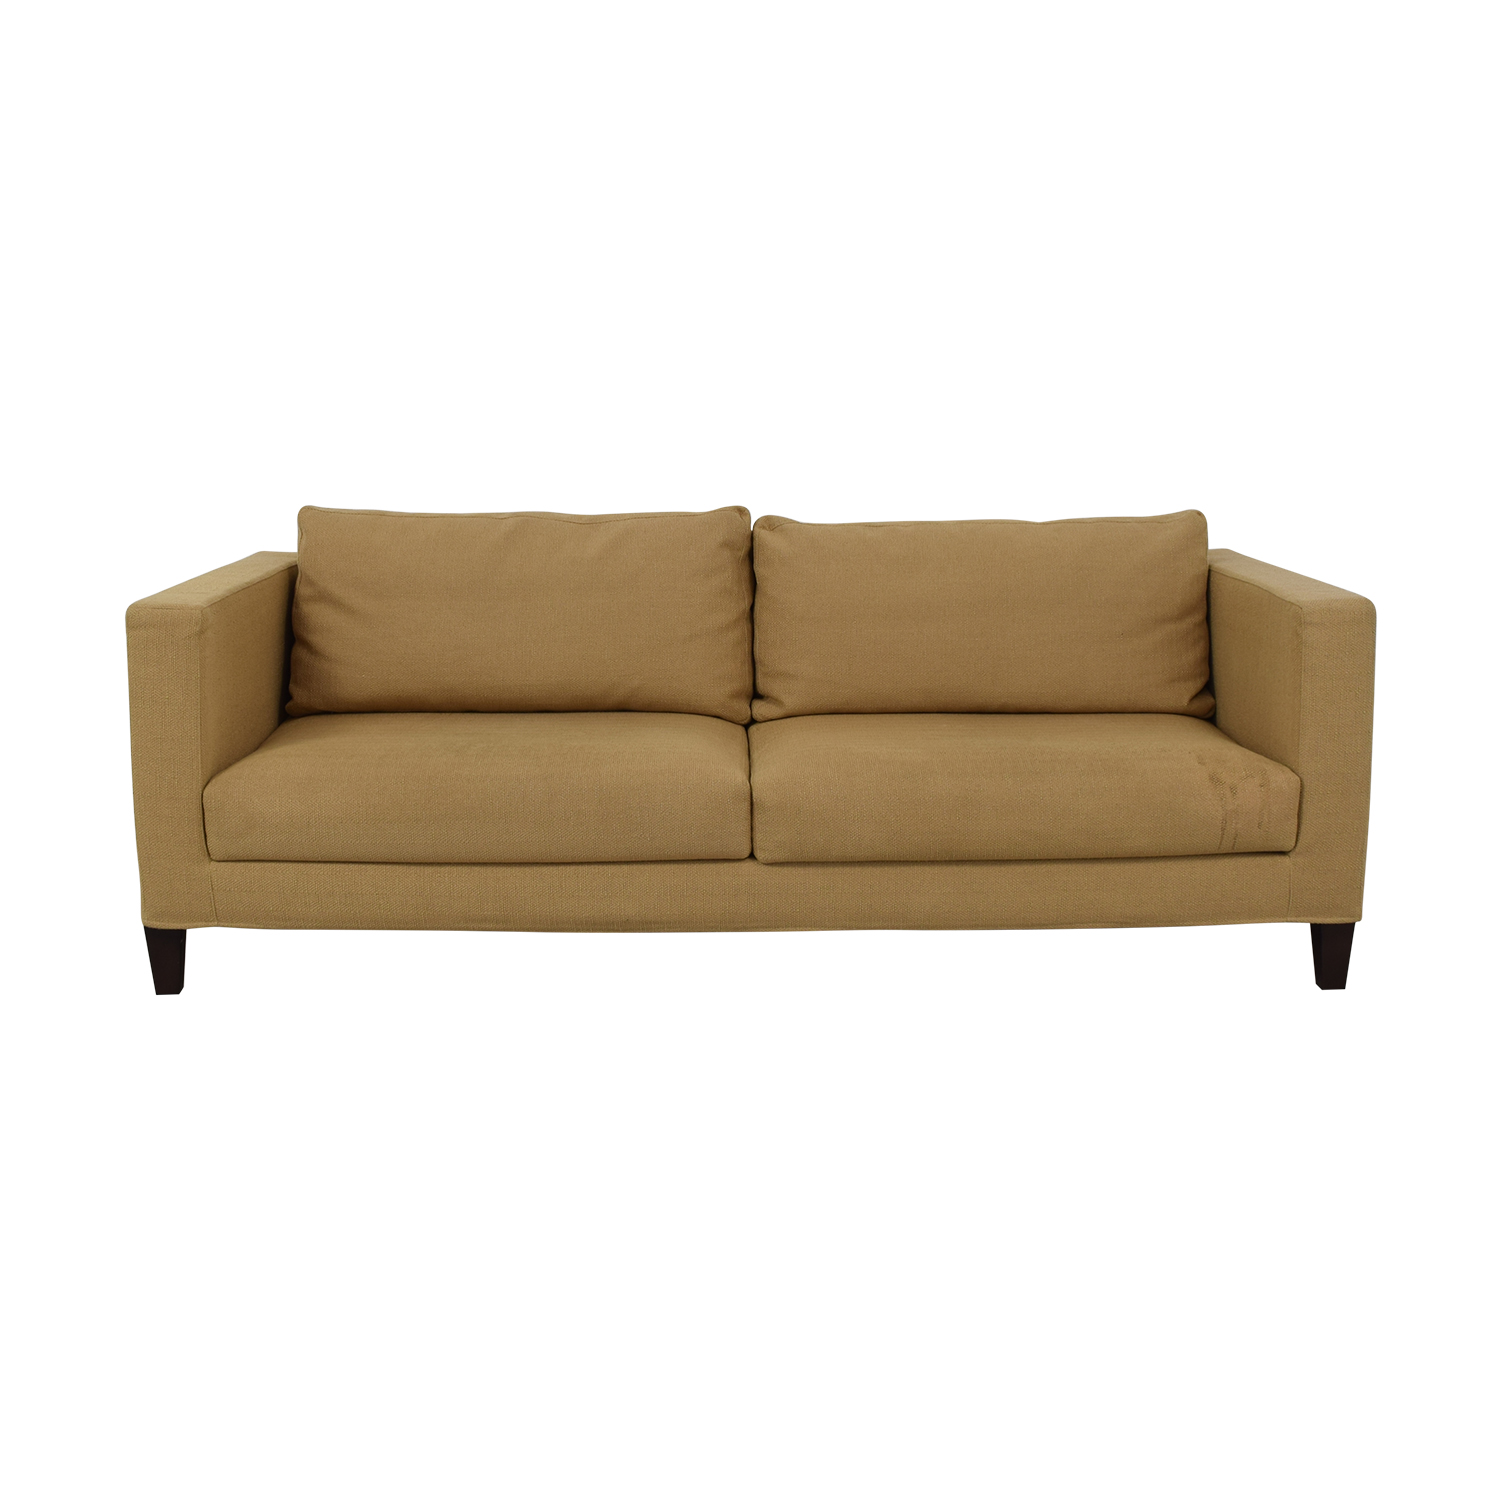 Two Cushion Sofa / Classic Sofas